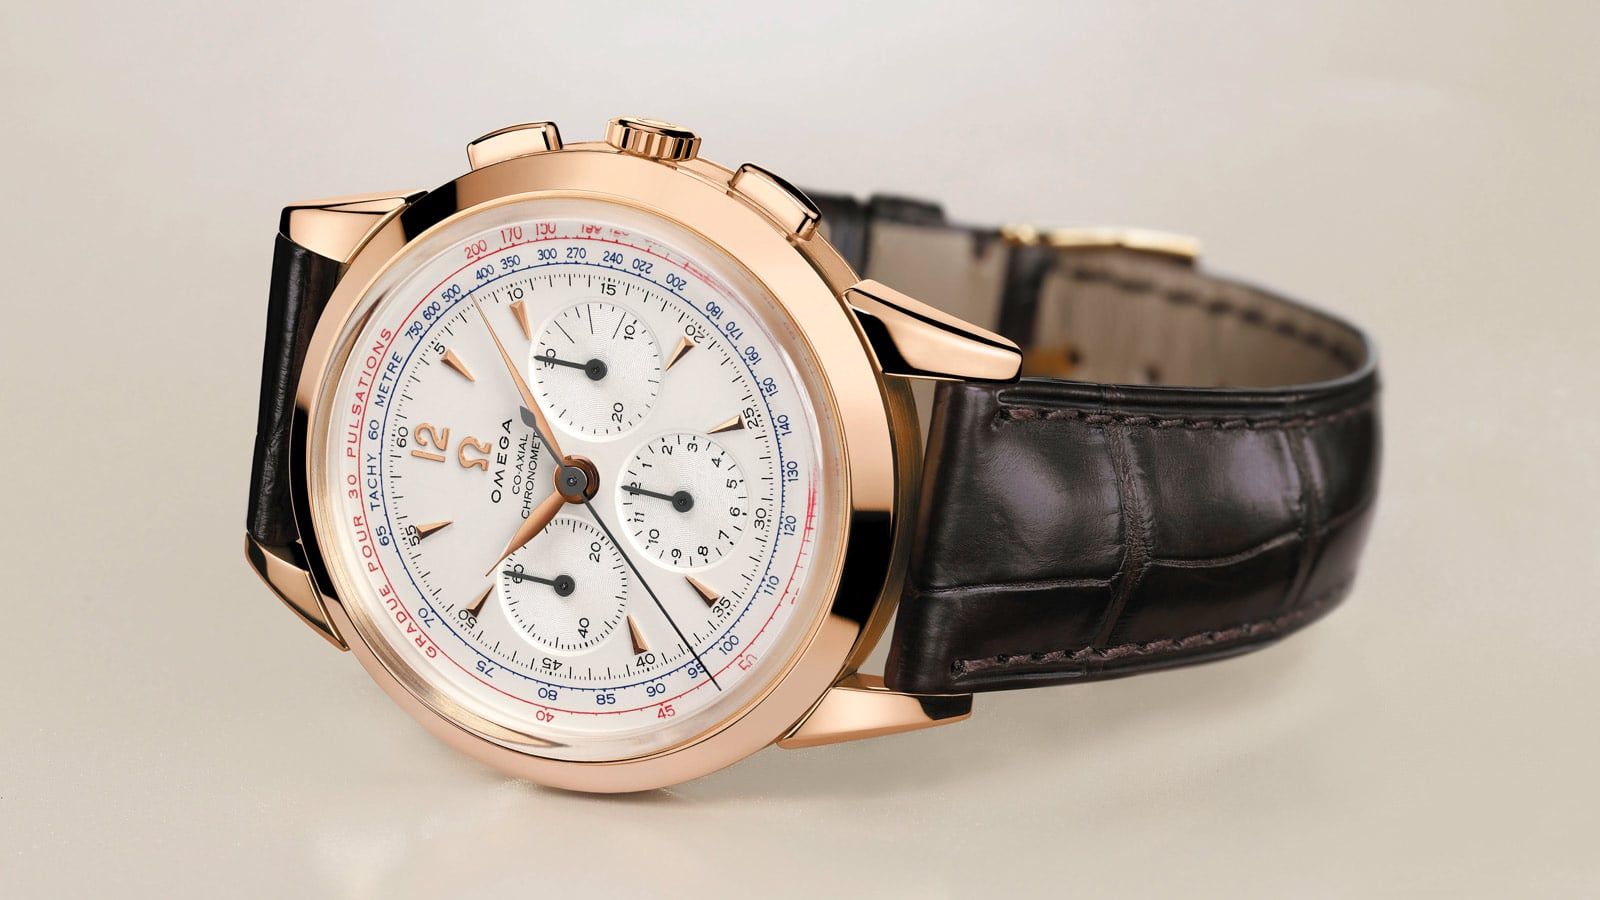 HONOURING OMEGA'S LEADING ROLE IN THE HISTORY OF SPORT TIMEKEEPING